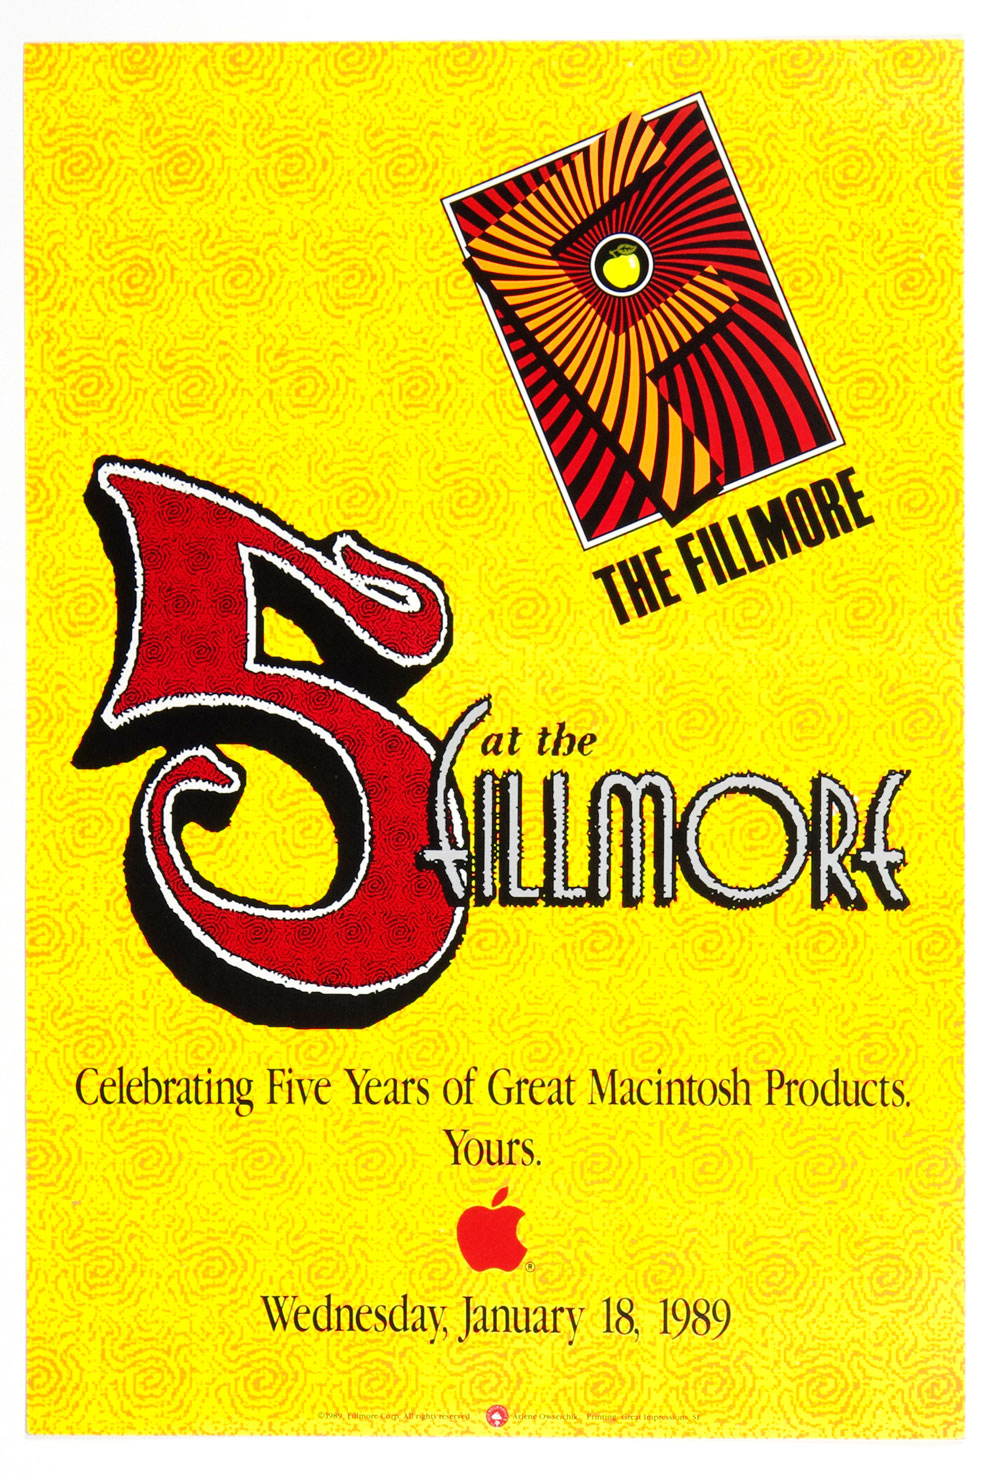 Mcintosh Products Celebrating Five Years of Great  Poster New Fillmore